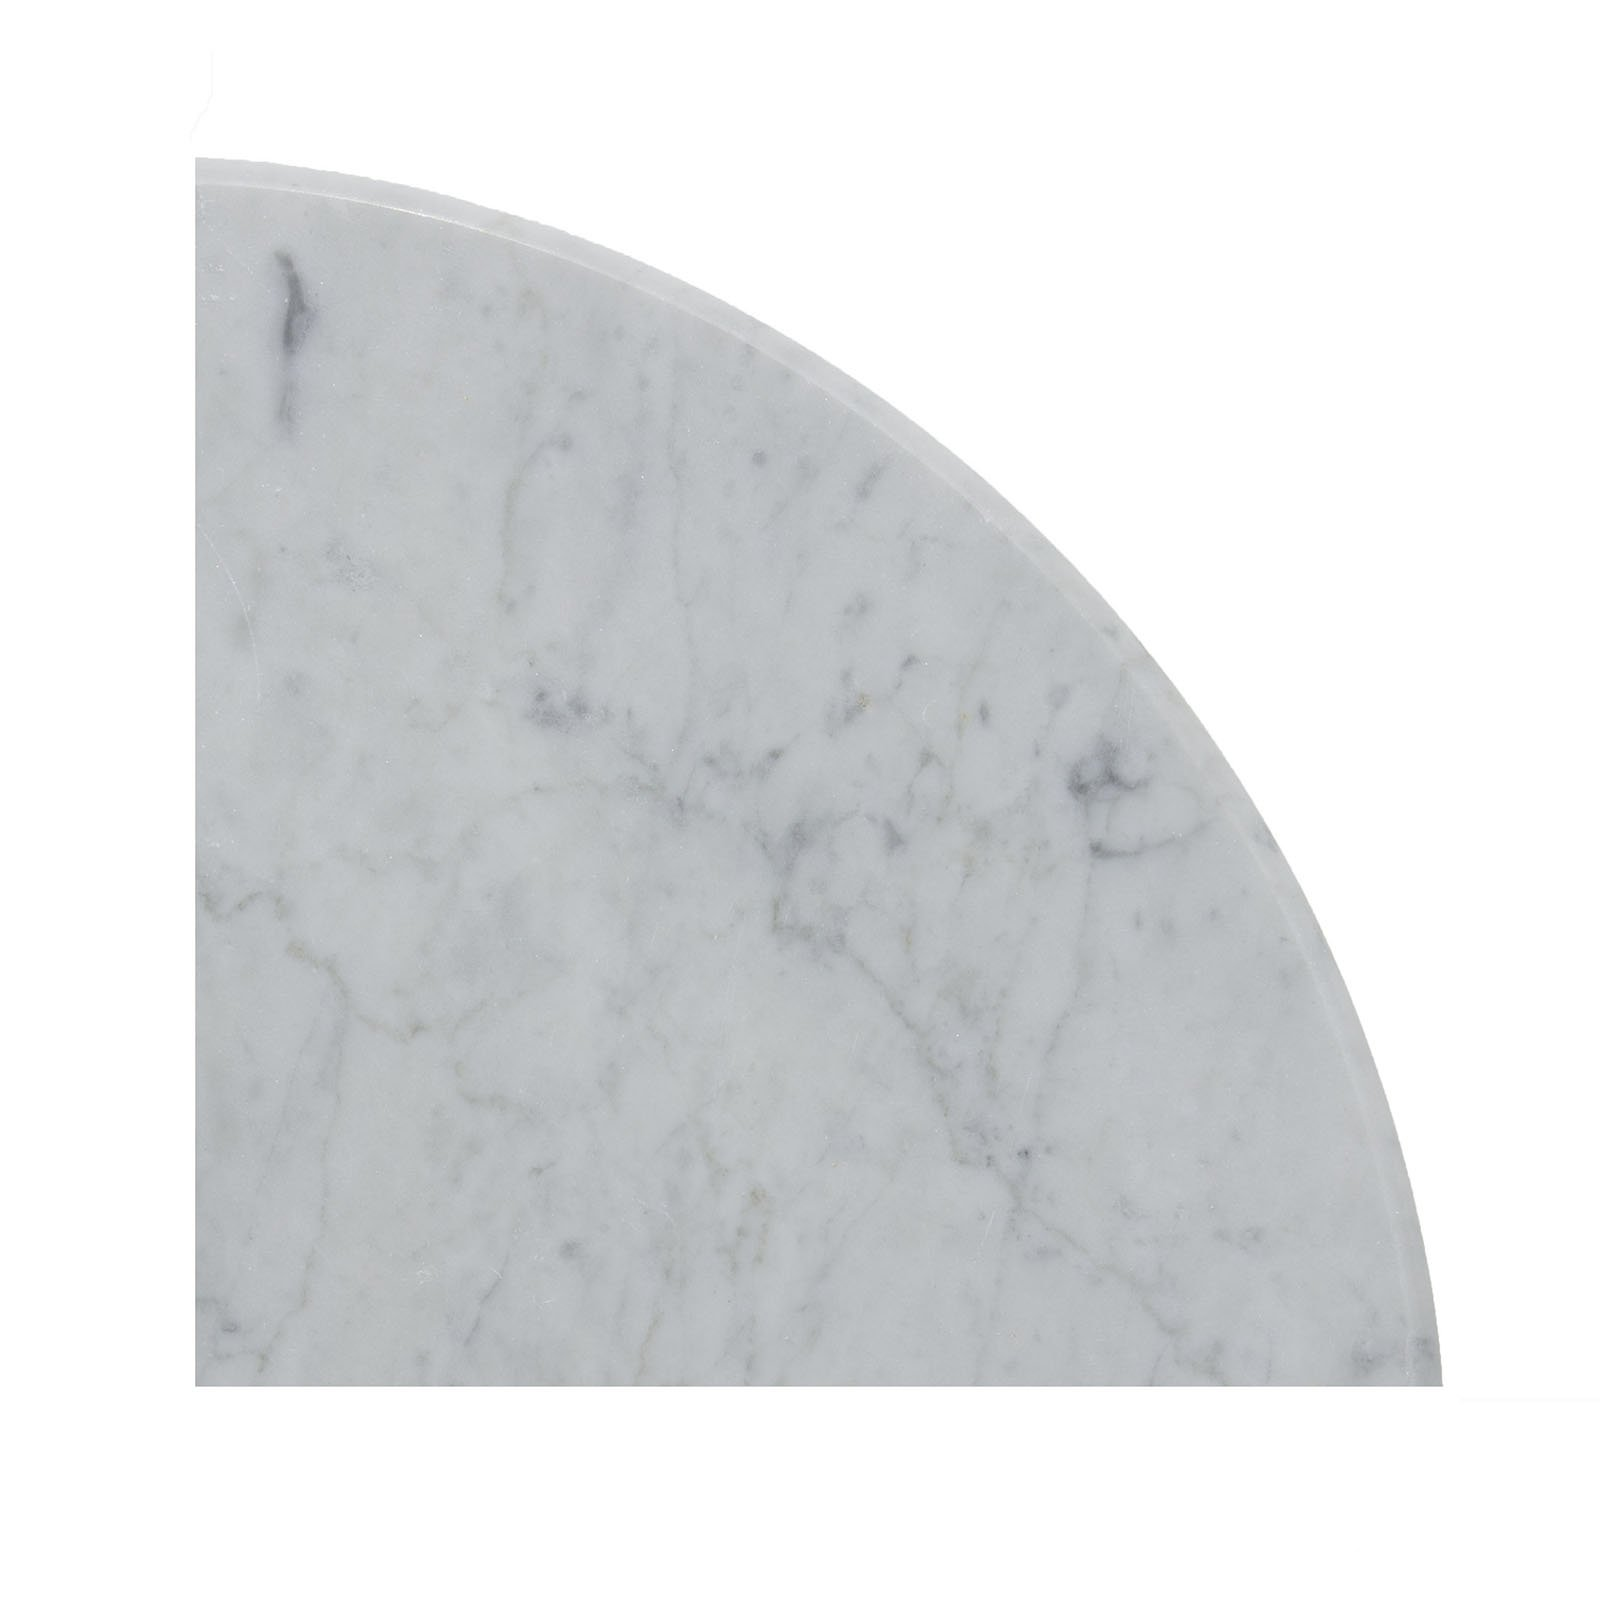 Carrara White Marble Accessory, CWMT9SHE, 9''X9''X3/4'' Corner Shelf, Both Sides Polished ((Two Pieces))